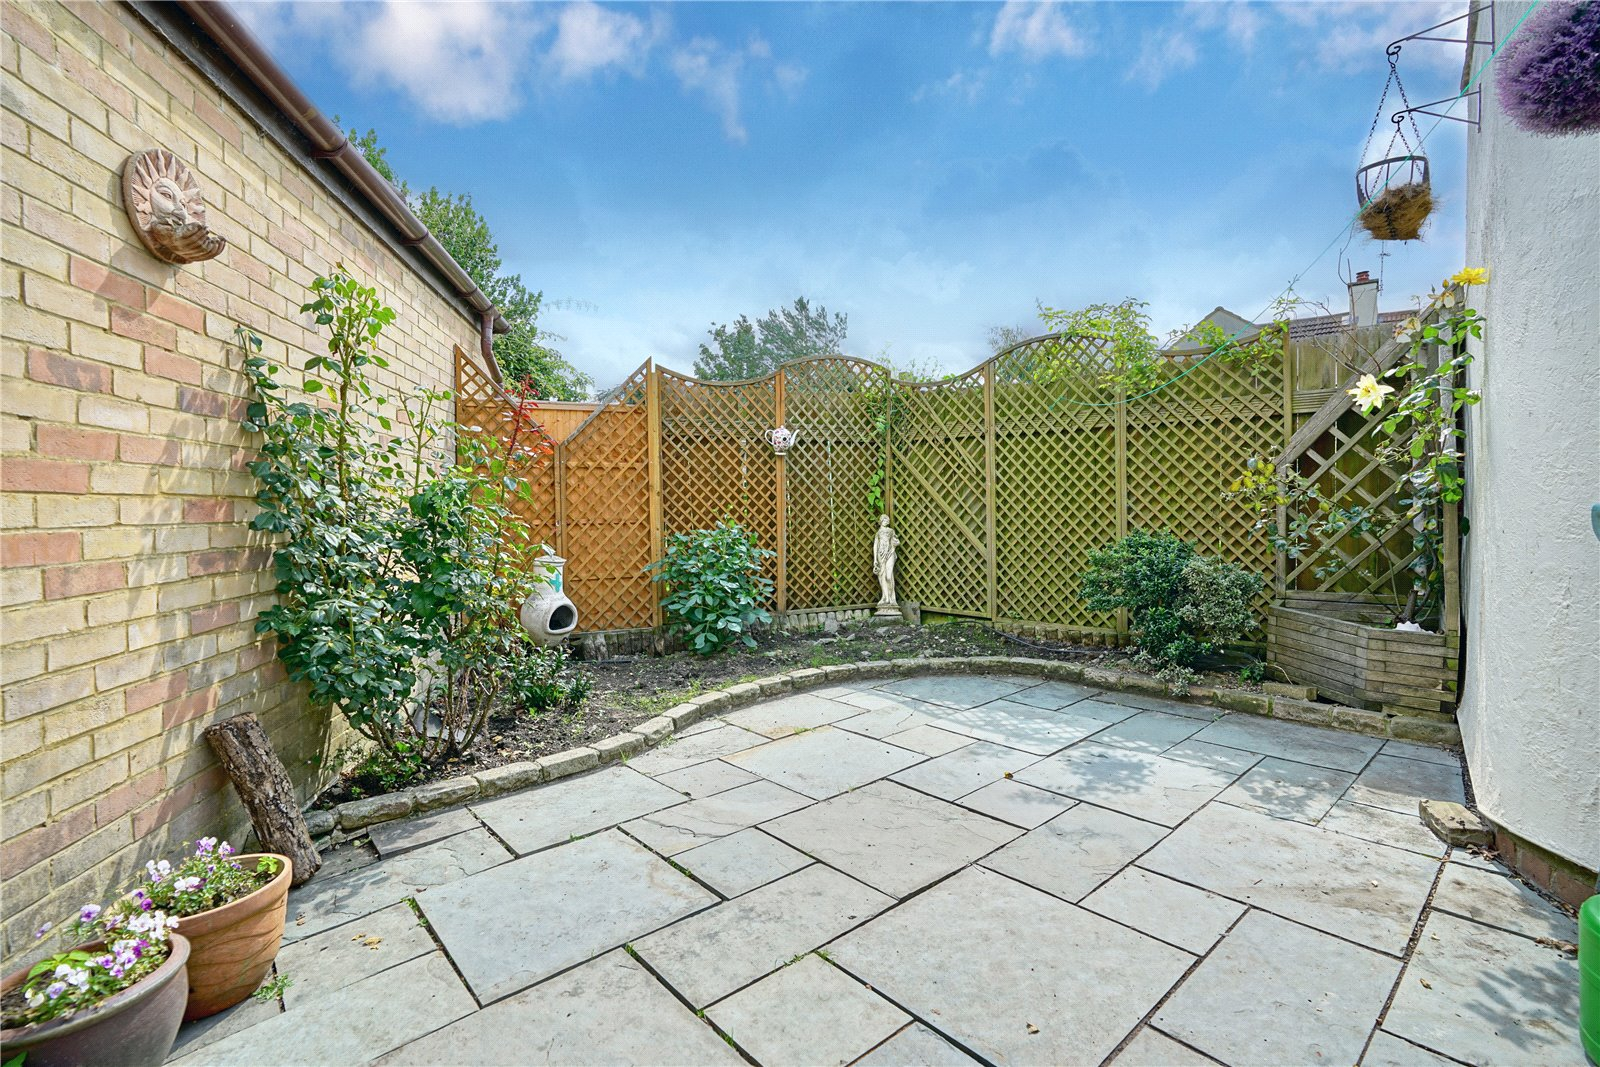 2 bed house for sale in Offord D'arcy 4